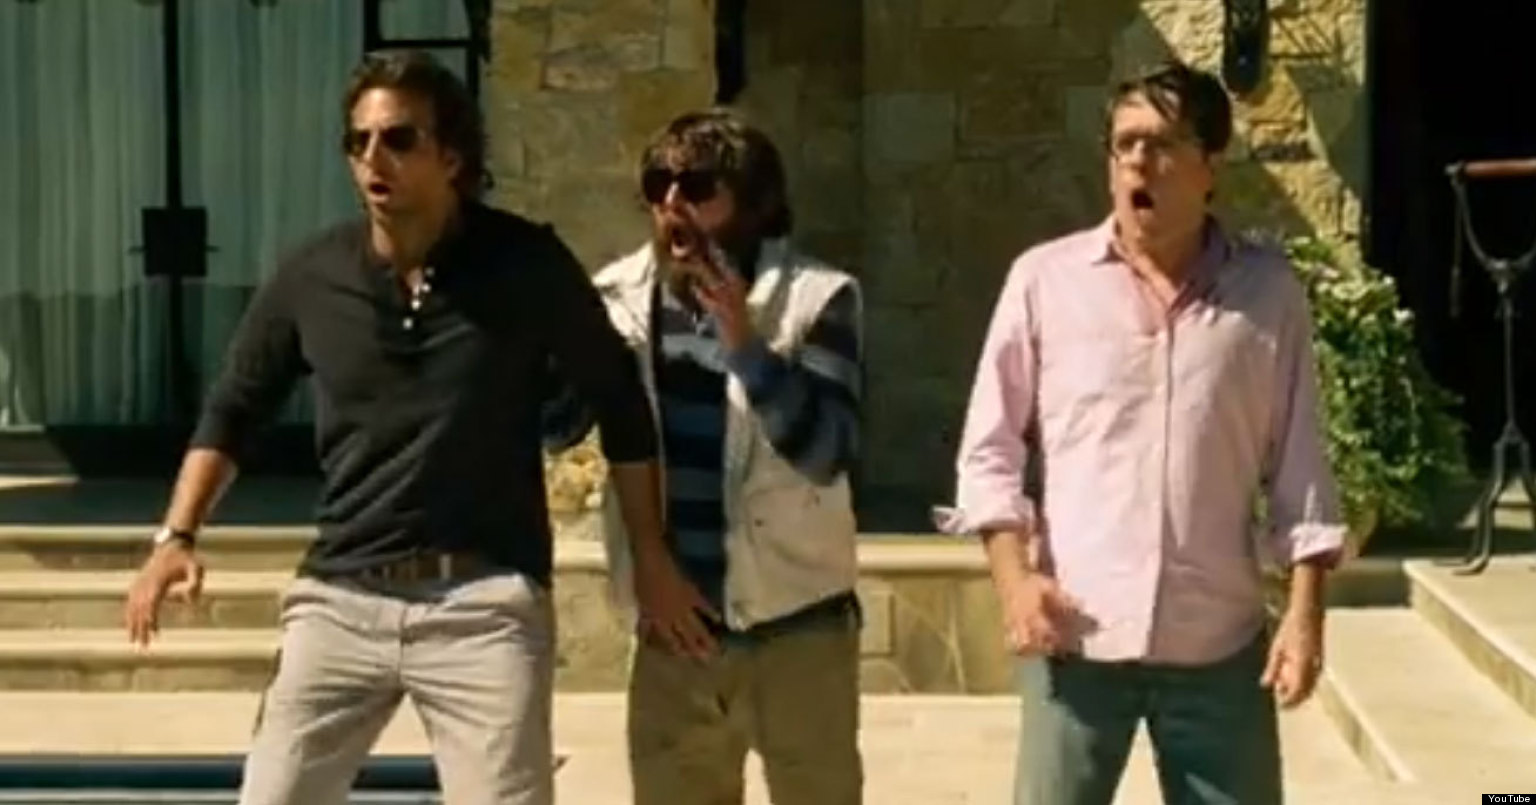 Three Best Friends Quote From Hangover : Download image hangover three best friends quote pc